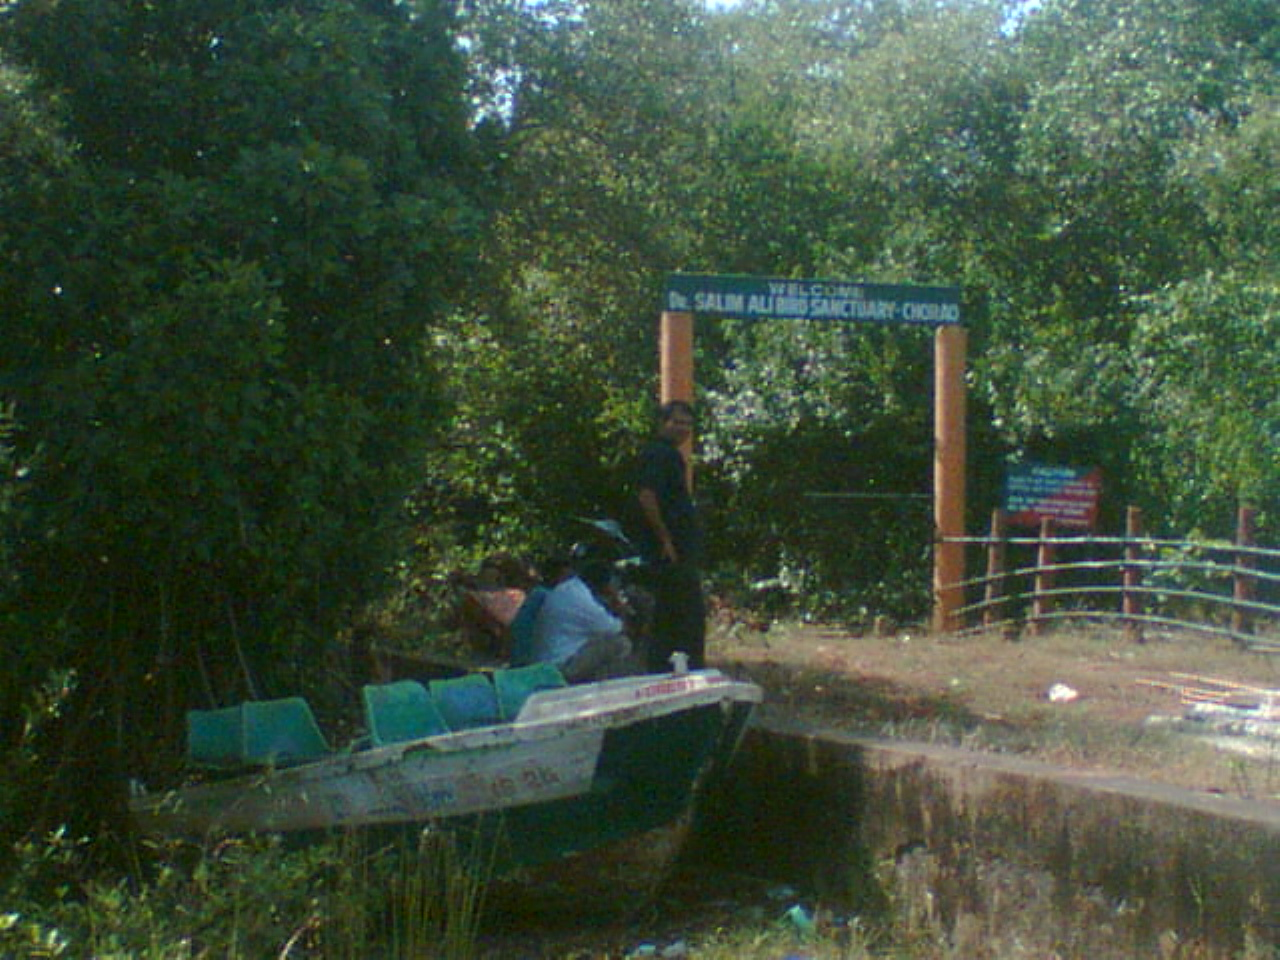 Dr. Salim Ali Bird Sanctuary Goa India Location Attractions Map,Location Attractions Map of Dr. Salim Ali Bird Sanctuary Goa India,Dr. Salim Ali Bird Sanctuary Goa India accommodation destinations hotels map reviews photos pictures,dr salim ali bird sanctuary chorao and its biodiversity kerala thattekad timings